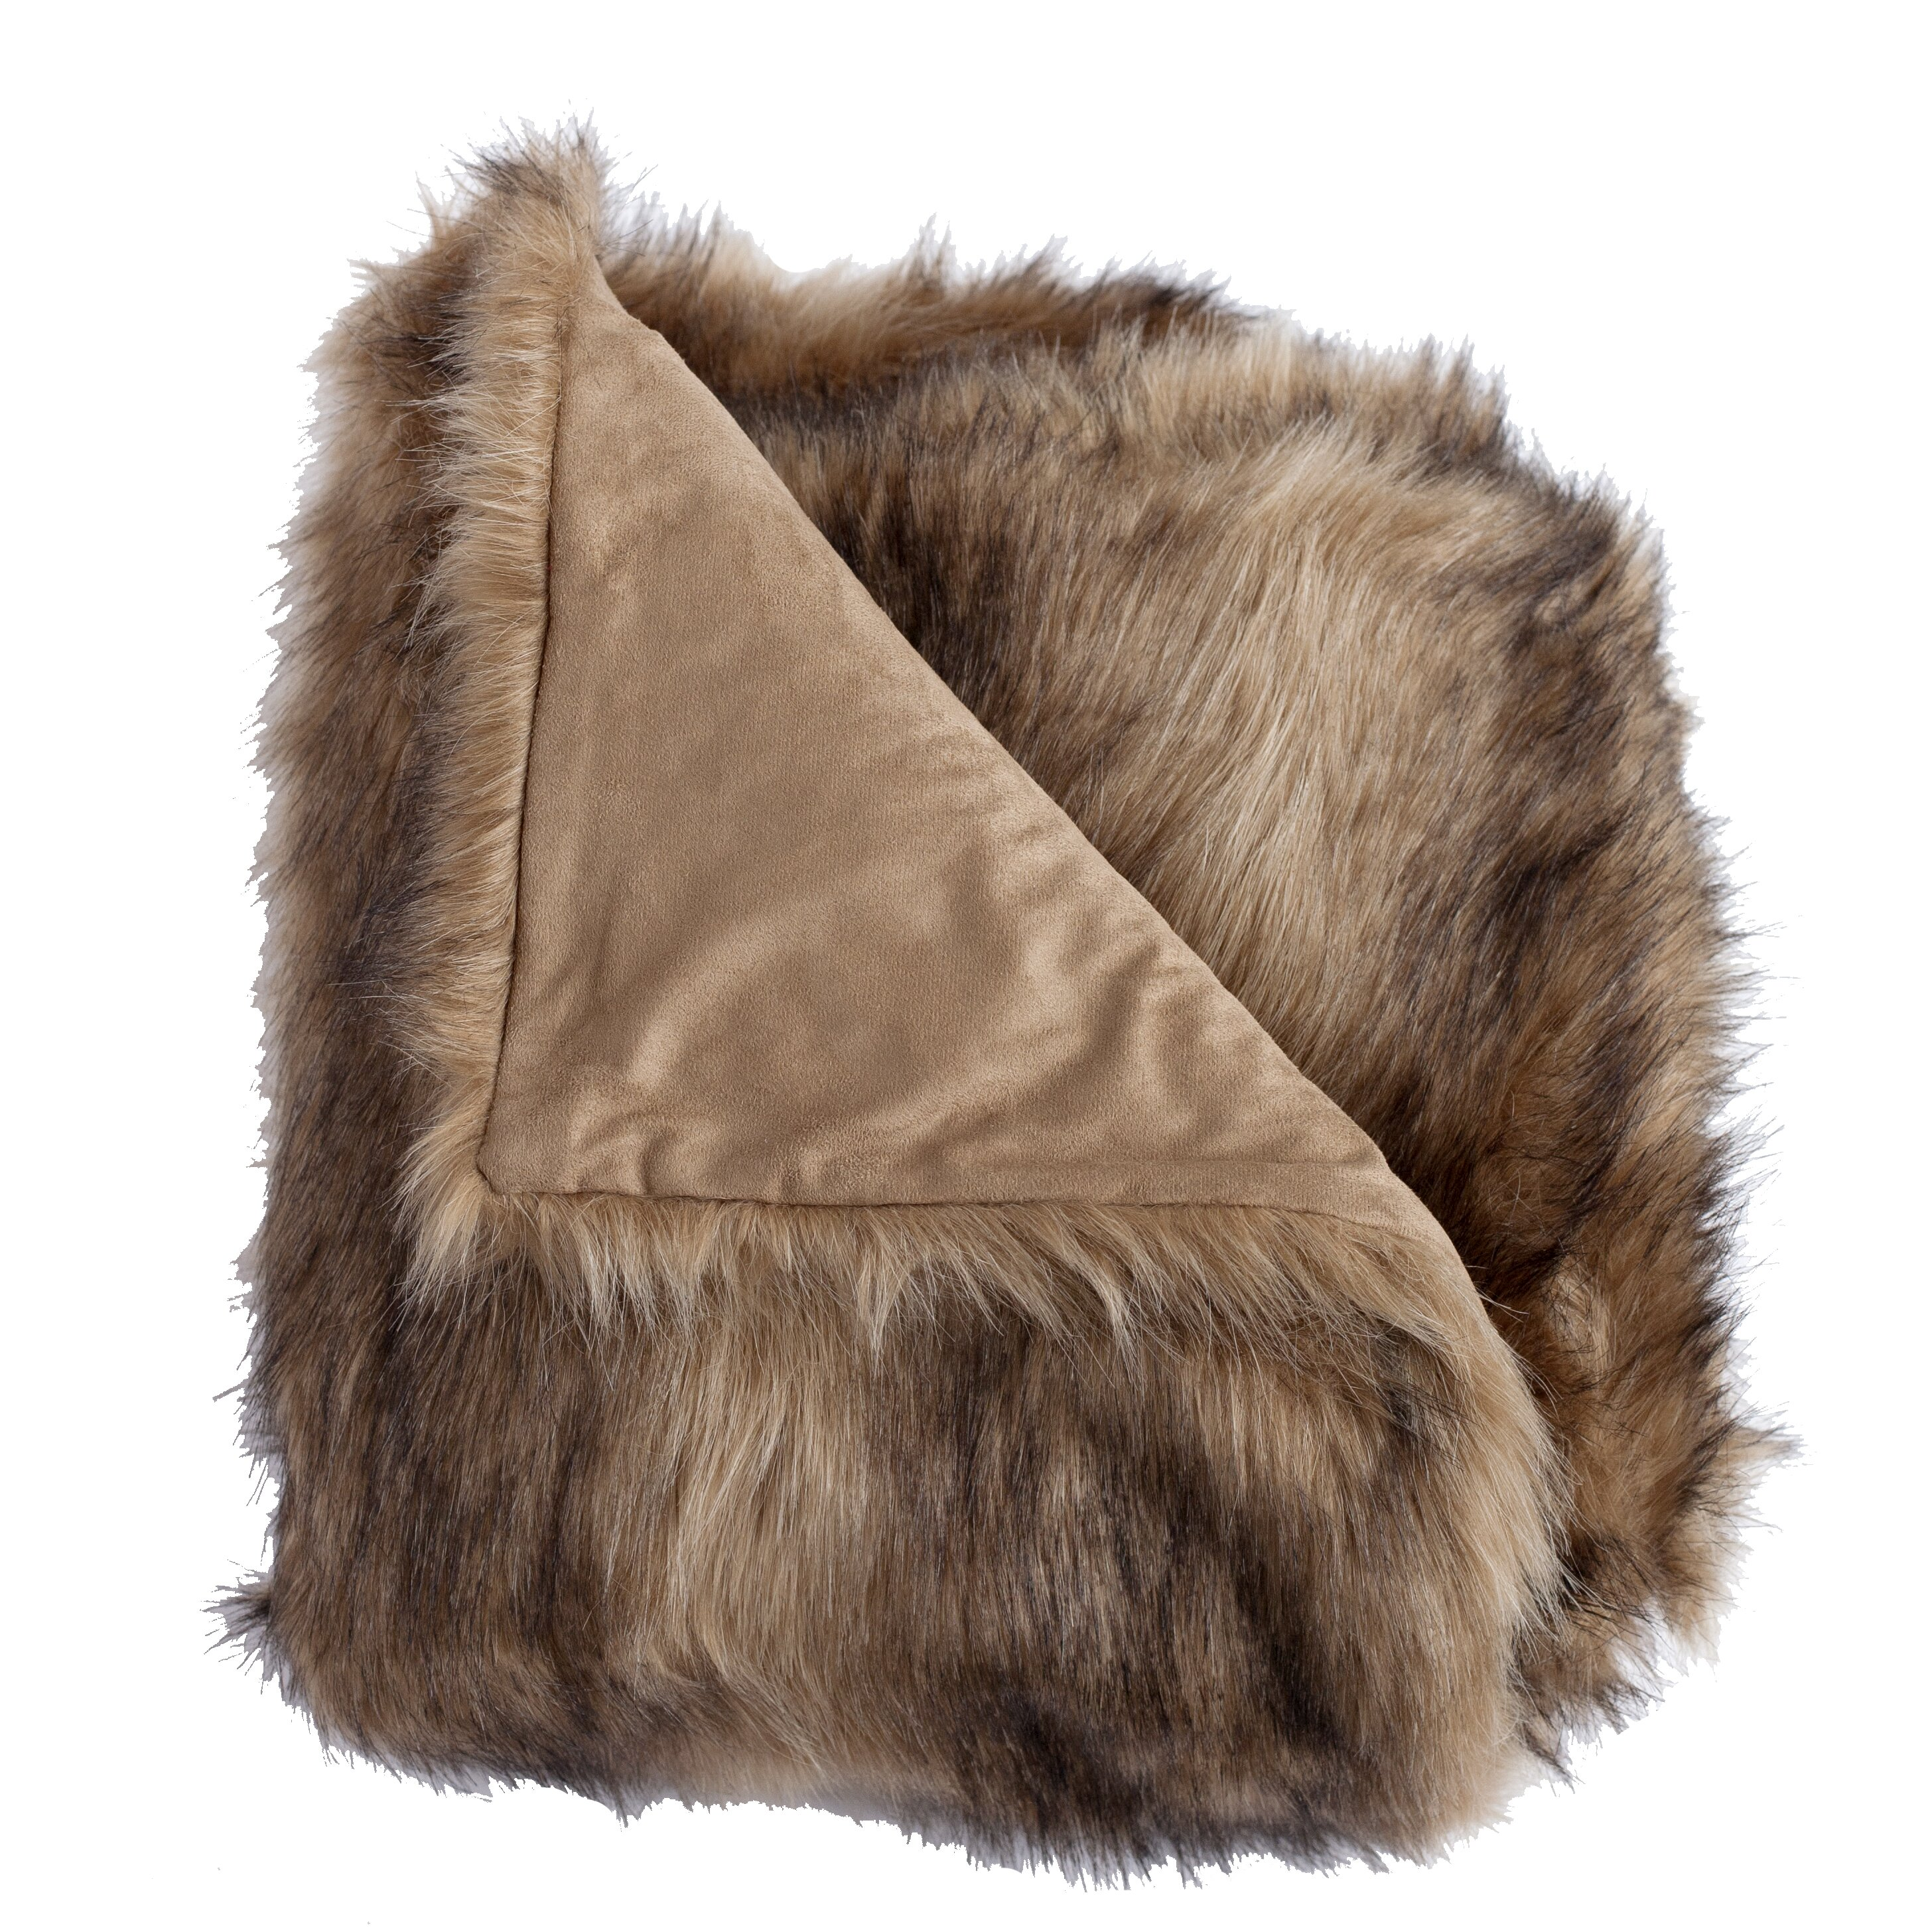 Wovenworkz Ibex Faux Fur Throw Blanket Amp Reviews Wayfair